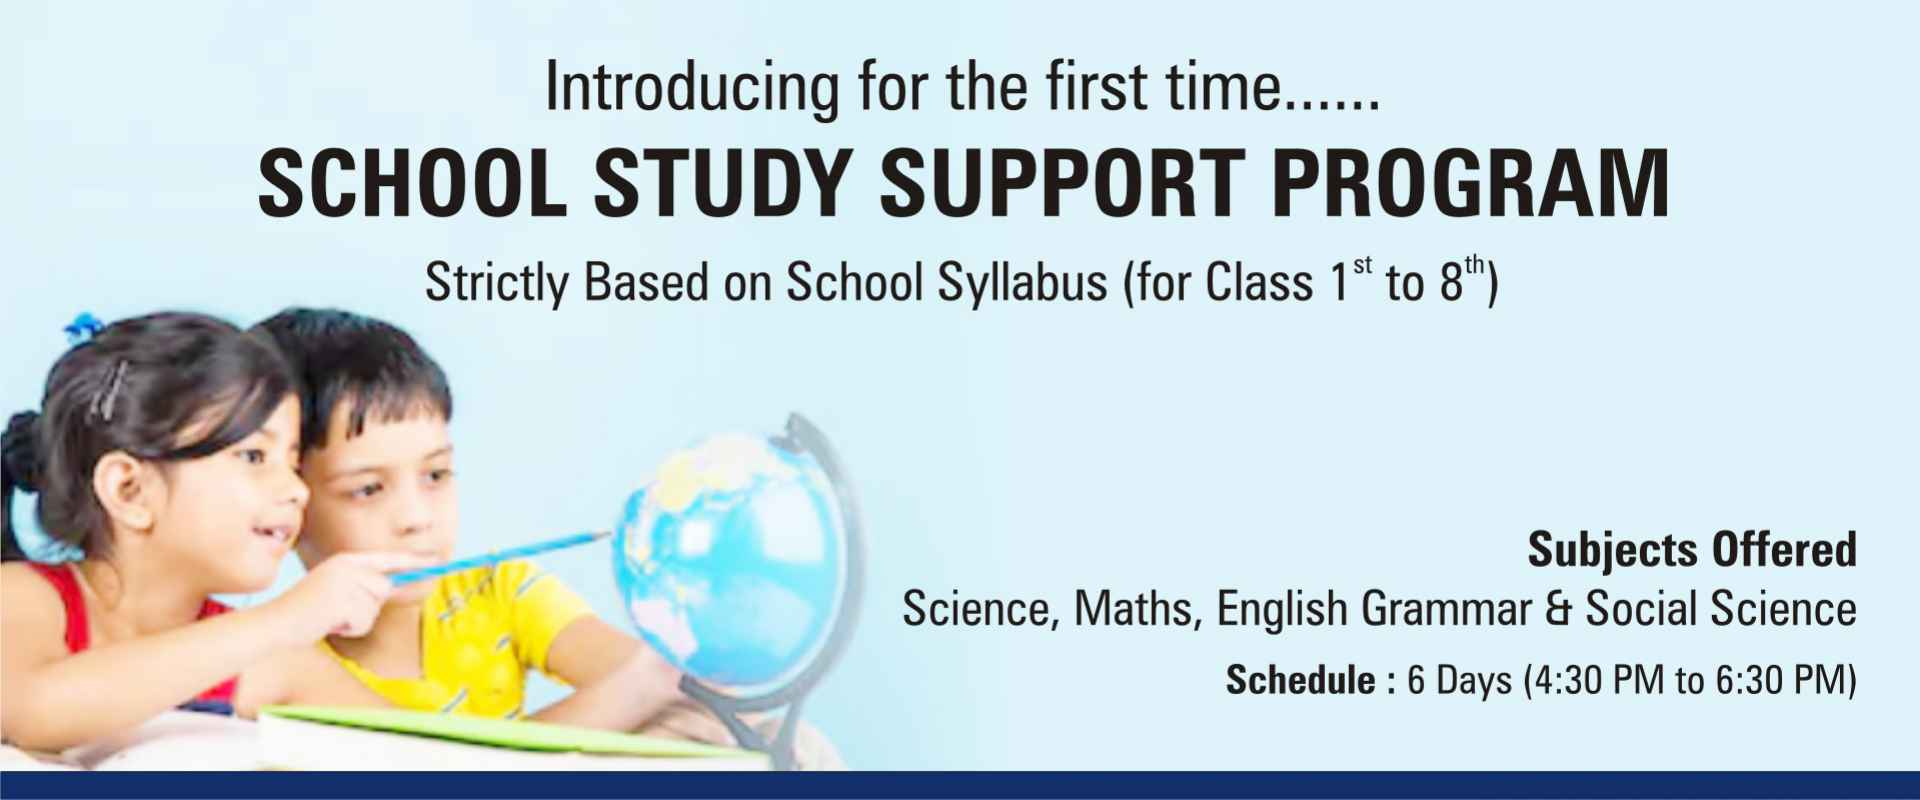 School Study Support Program